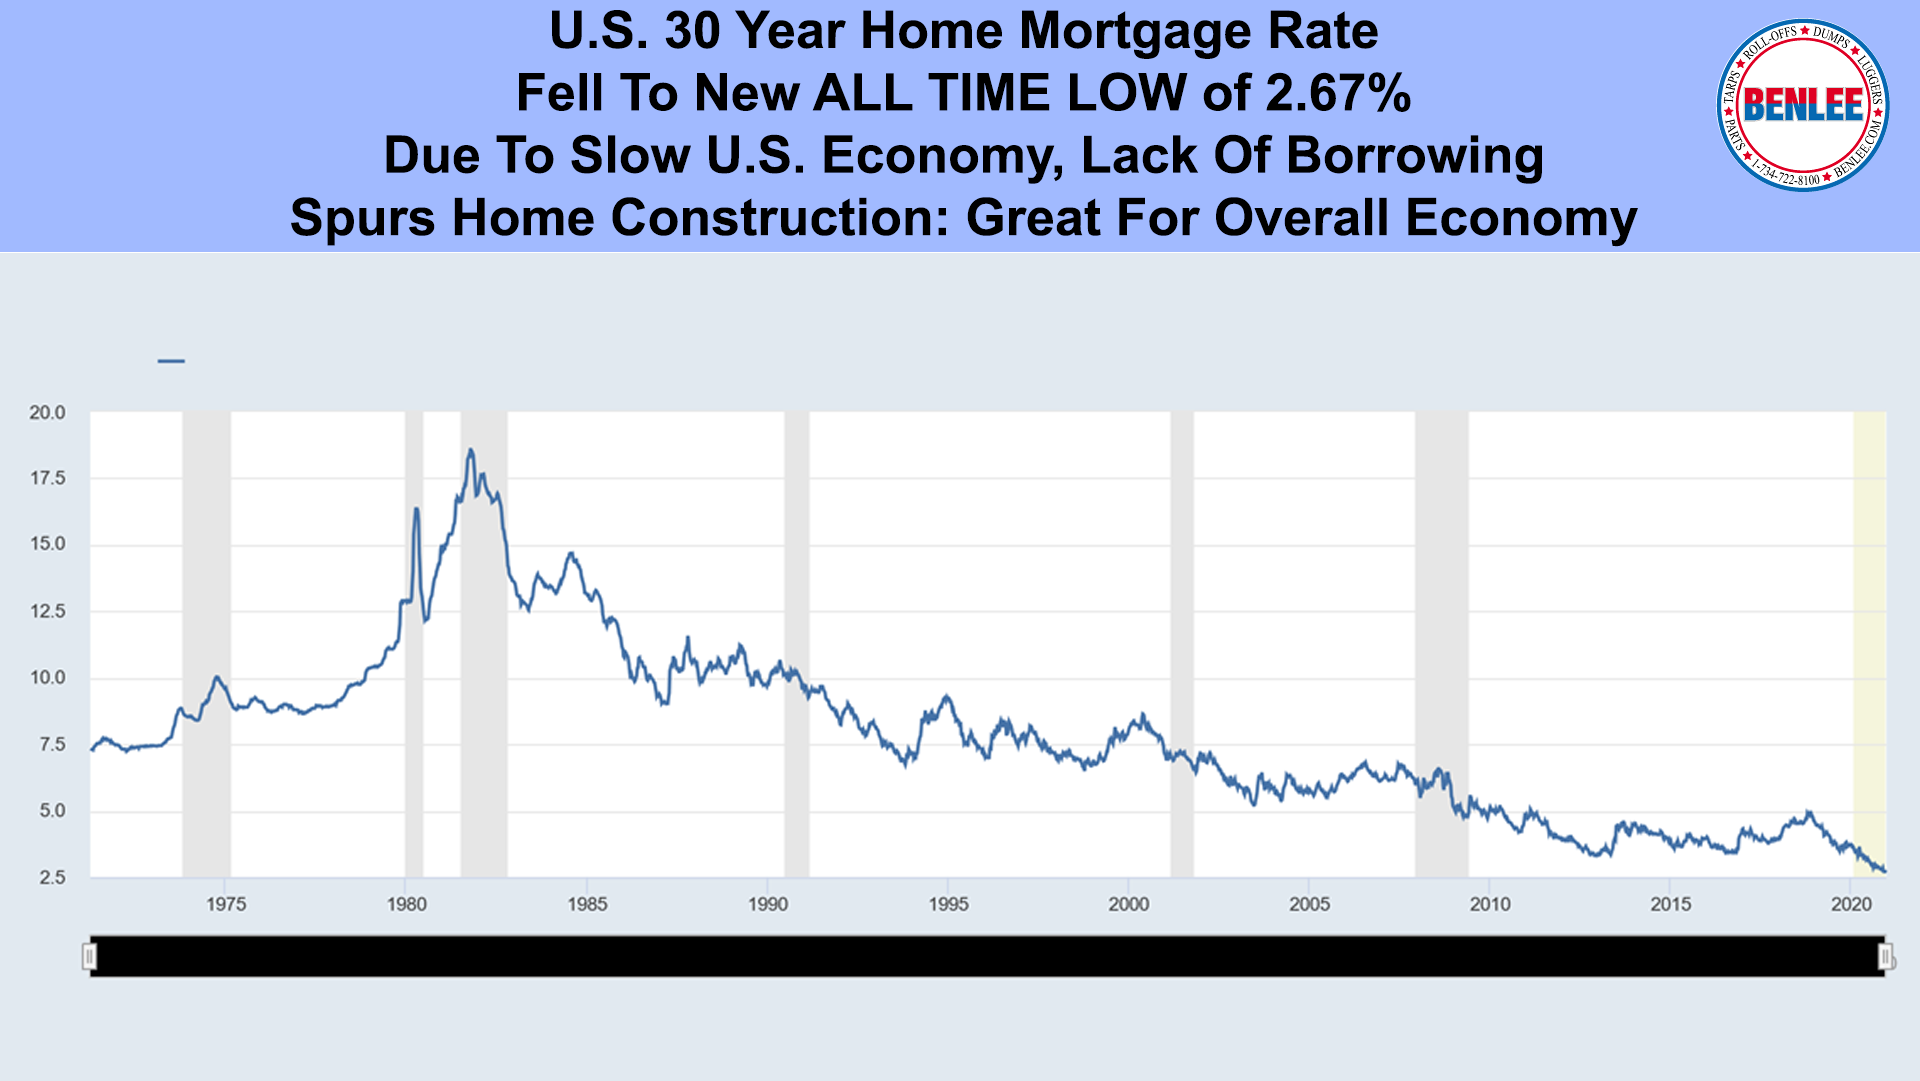 U.S. 30 Year Home Mortgage Rate